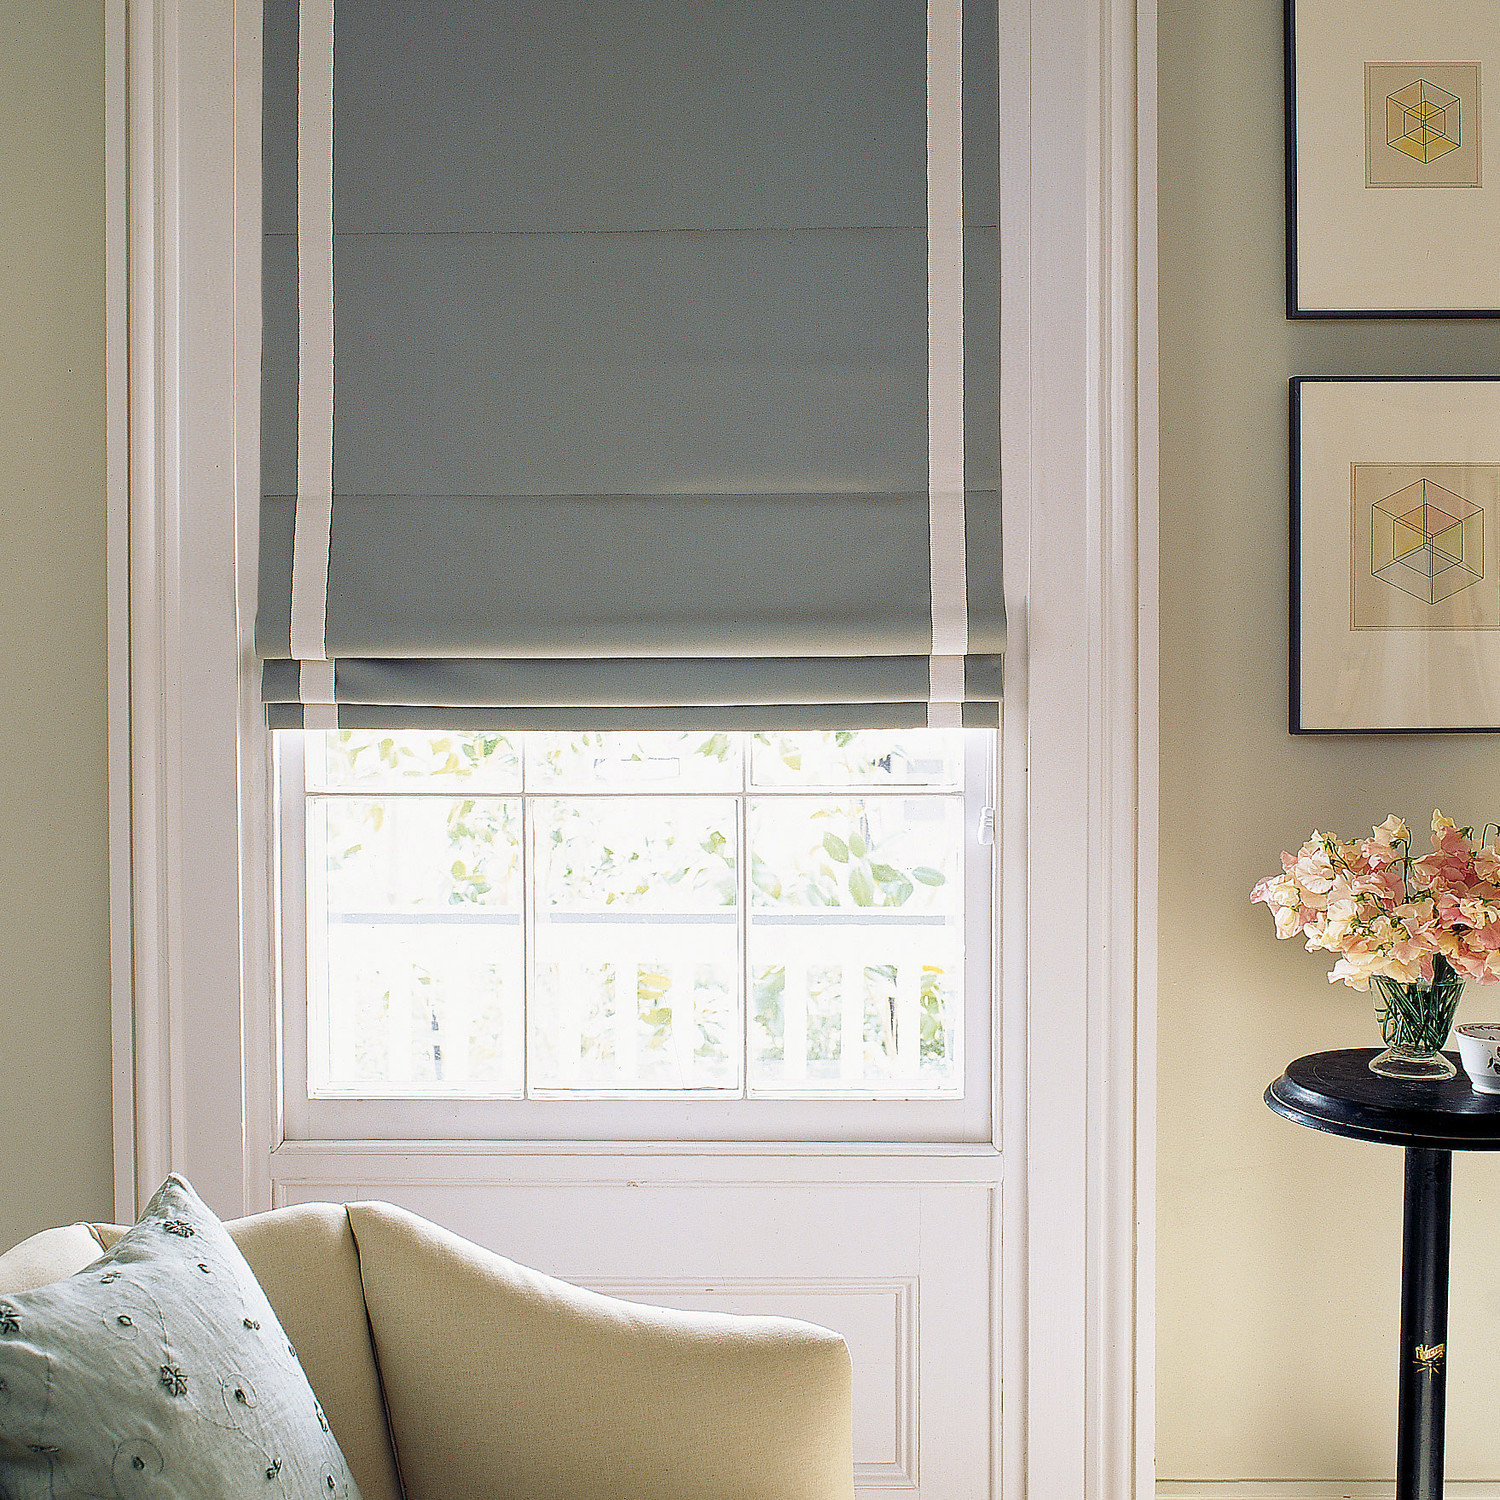 Window Roller Shades Lowes | Lowes Cellular Shades | Lowes Shades